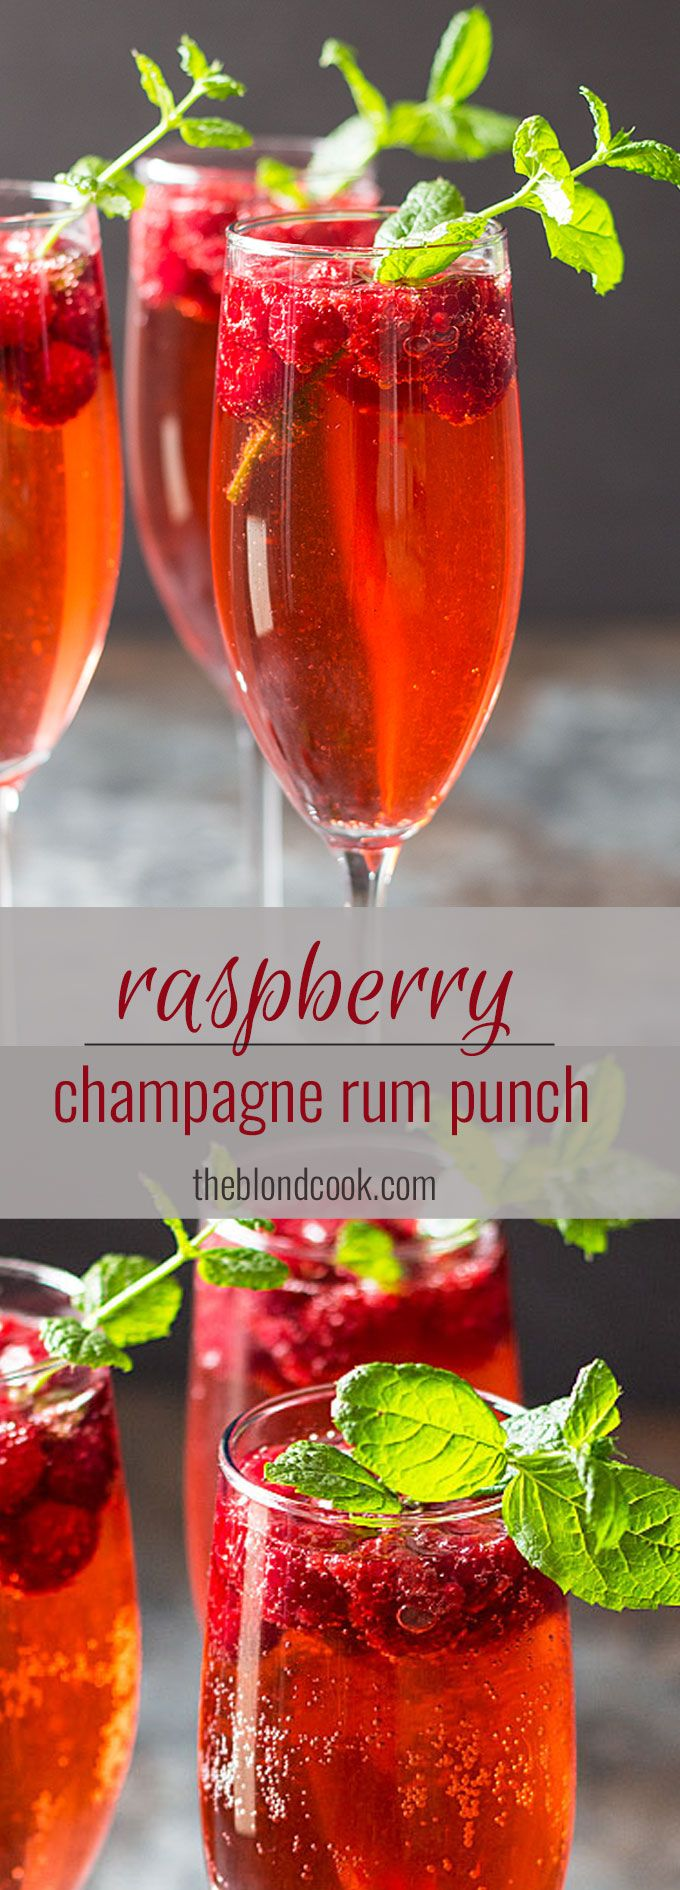 Raspberry Champagne Rum Punch - An easy and delicious cocktail perfect for New Year's!